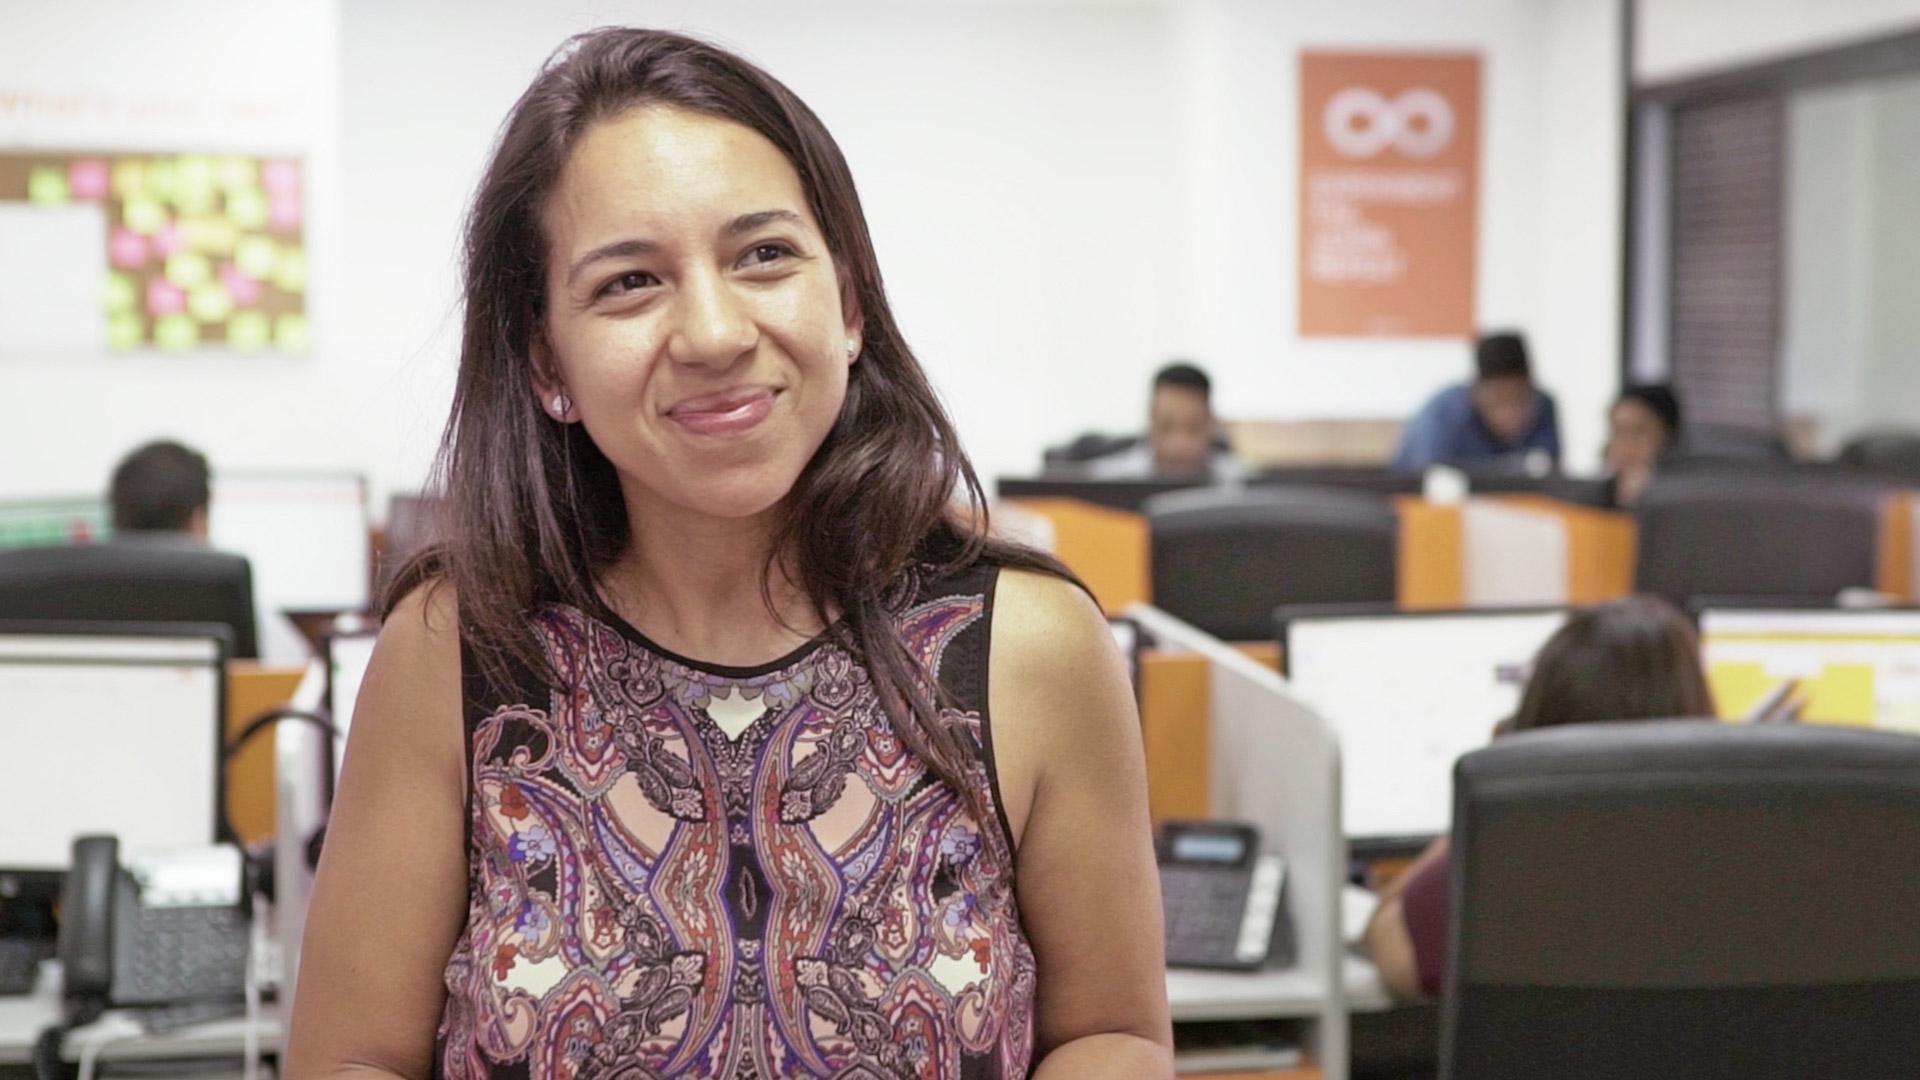 Niama El Bassunie, the CEO of WaystoCap, says she encourages entrepreneurs in Morocco to consider business ideas that can help resolve paint points across the African continent.